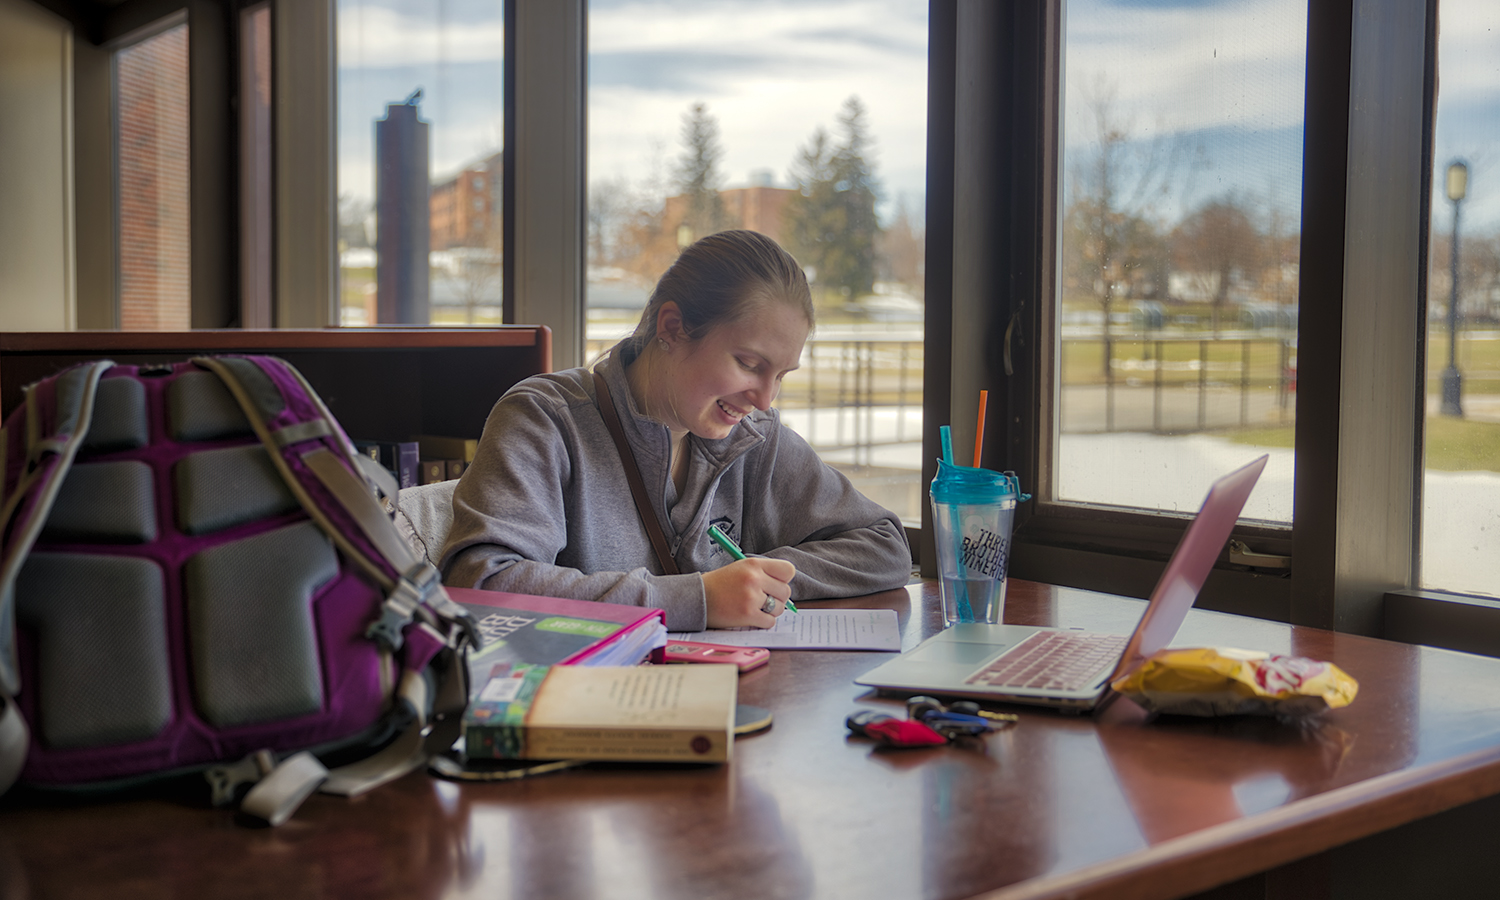 In Warren Hunting Smith Library, Erica Oosterhoff â18 works on her senior thesis focused on prion disease and neurodegeneration for Assistant Professor of Chemistry Kristin Sladeâs âBiochemistryâ class.